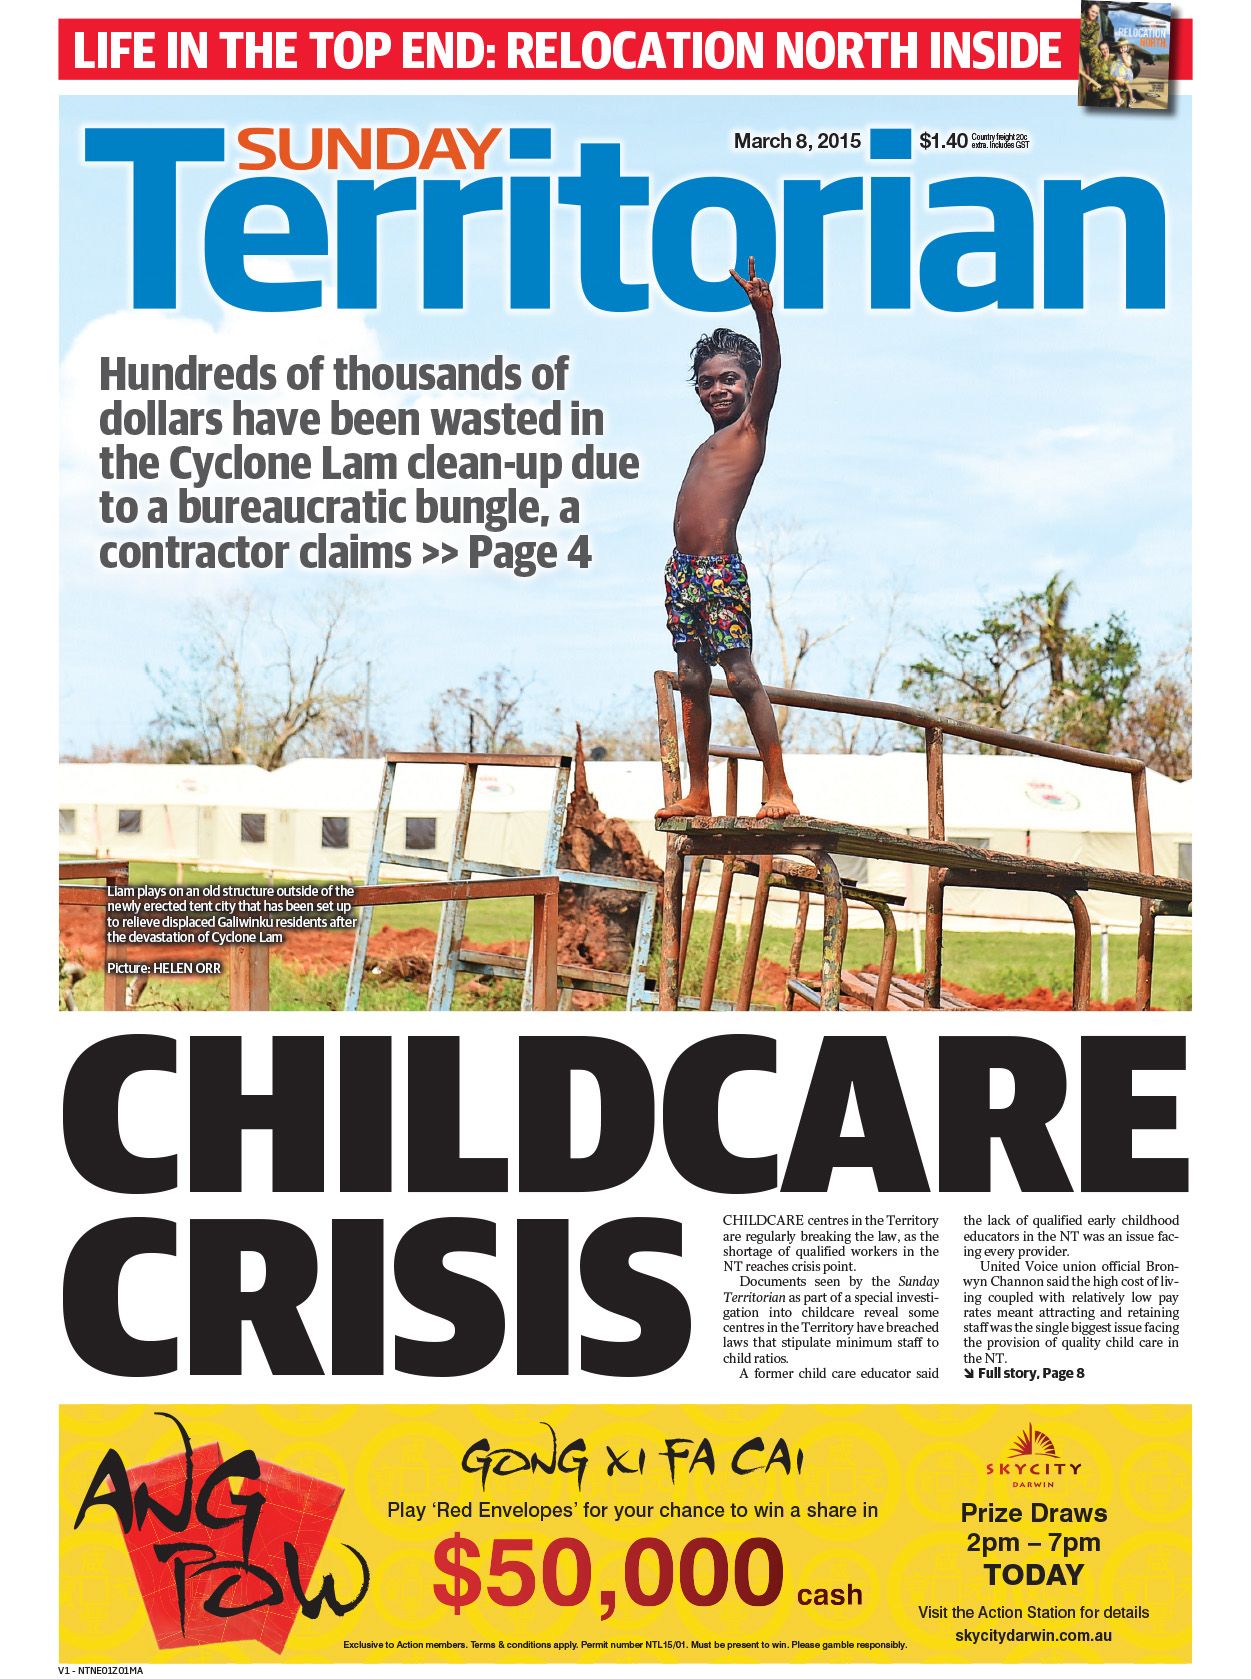 Northern Territory News_08-03-2015_Main_NTNews_p1.jpg